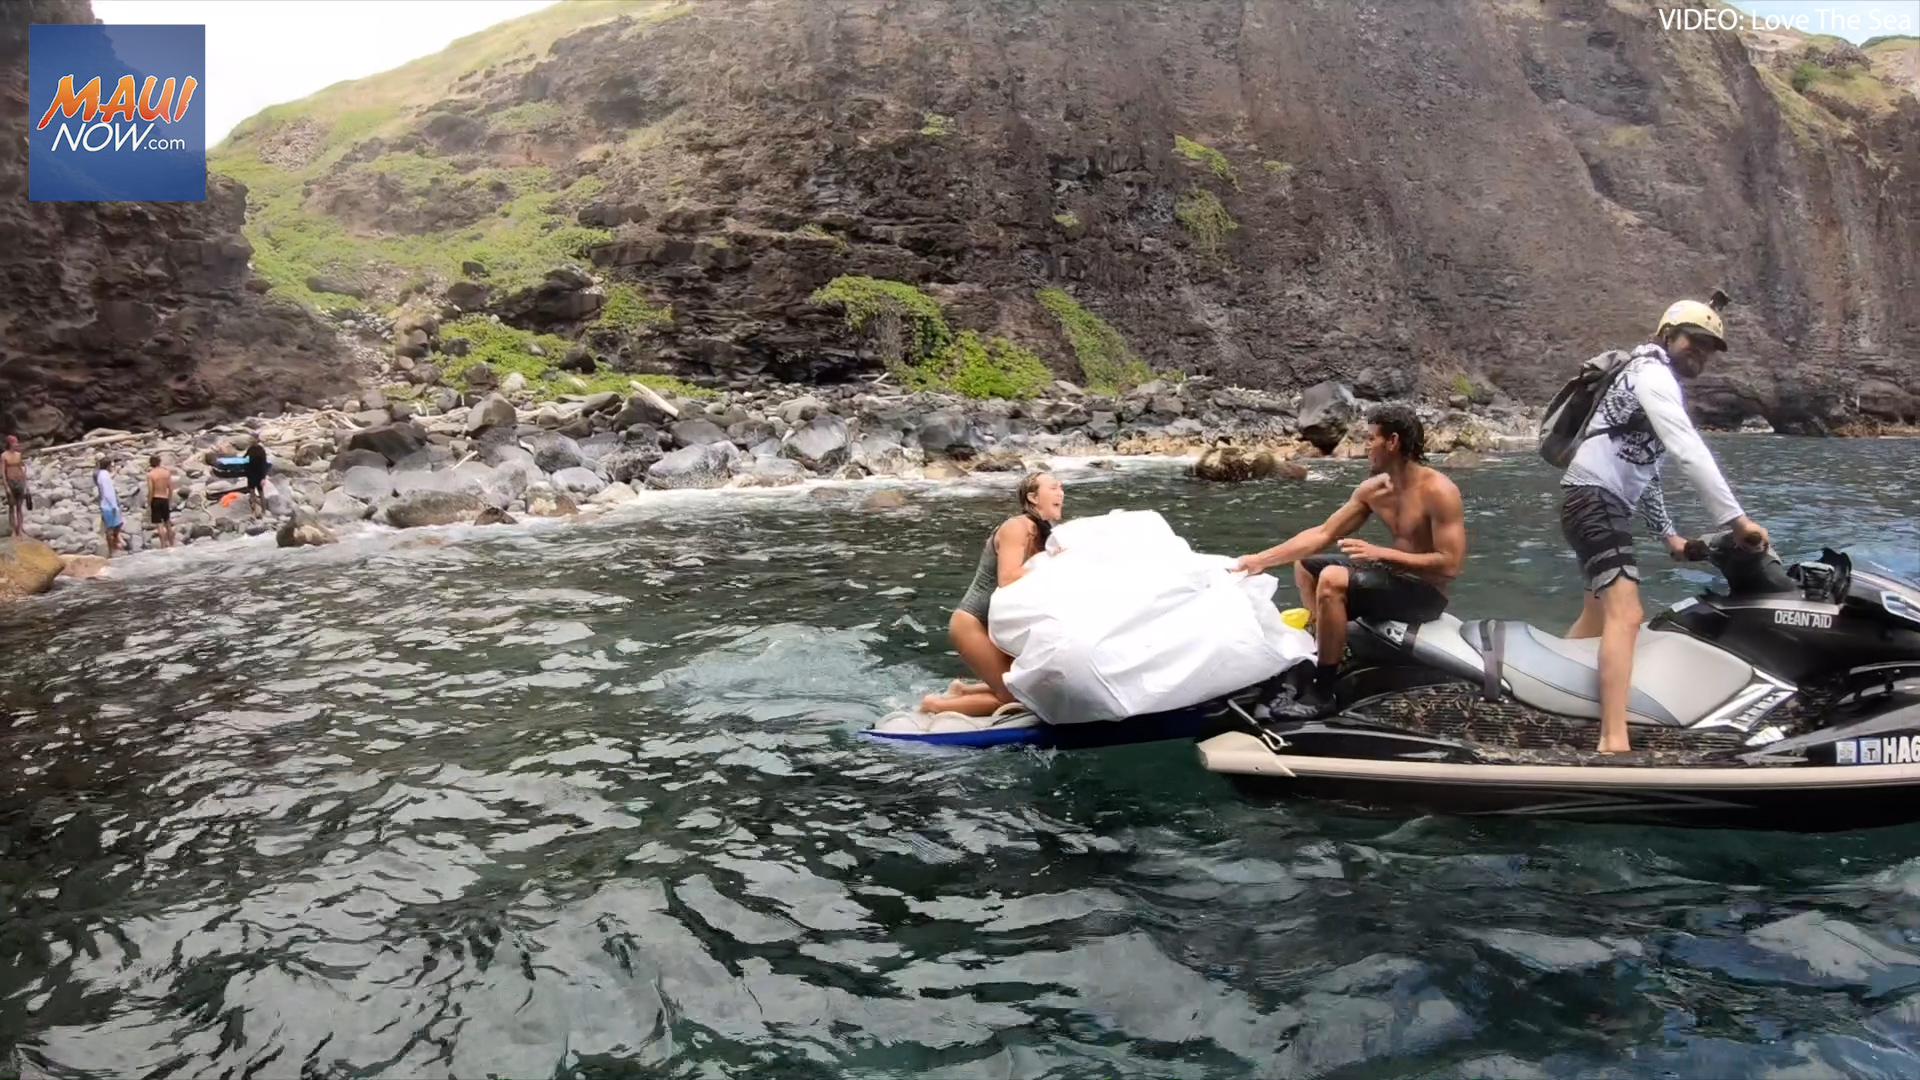 Love The Sea's Cleanup Recovers 4,700 lbs of Plastic Debris from Kahakuloa, Maui